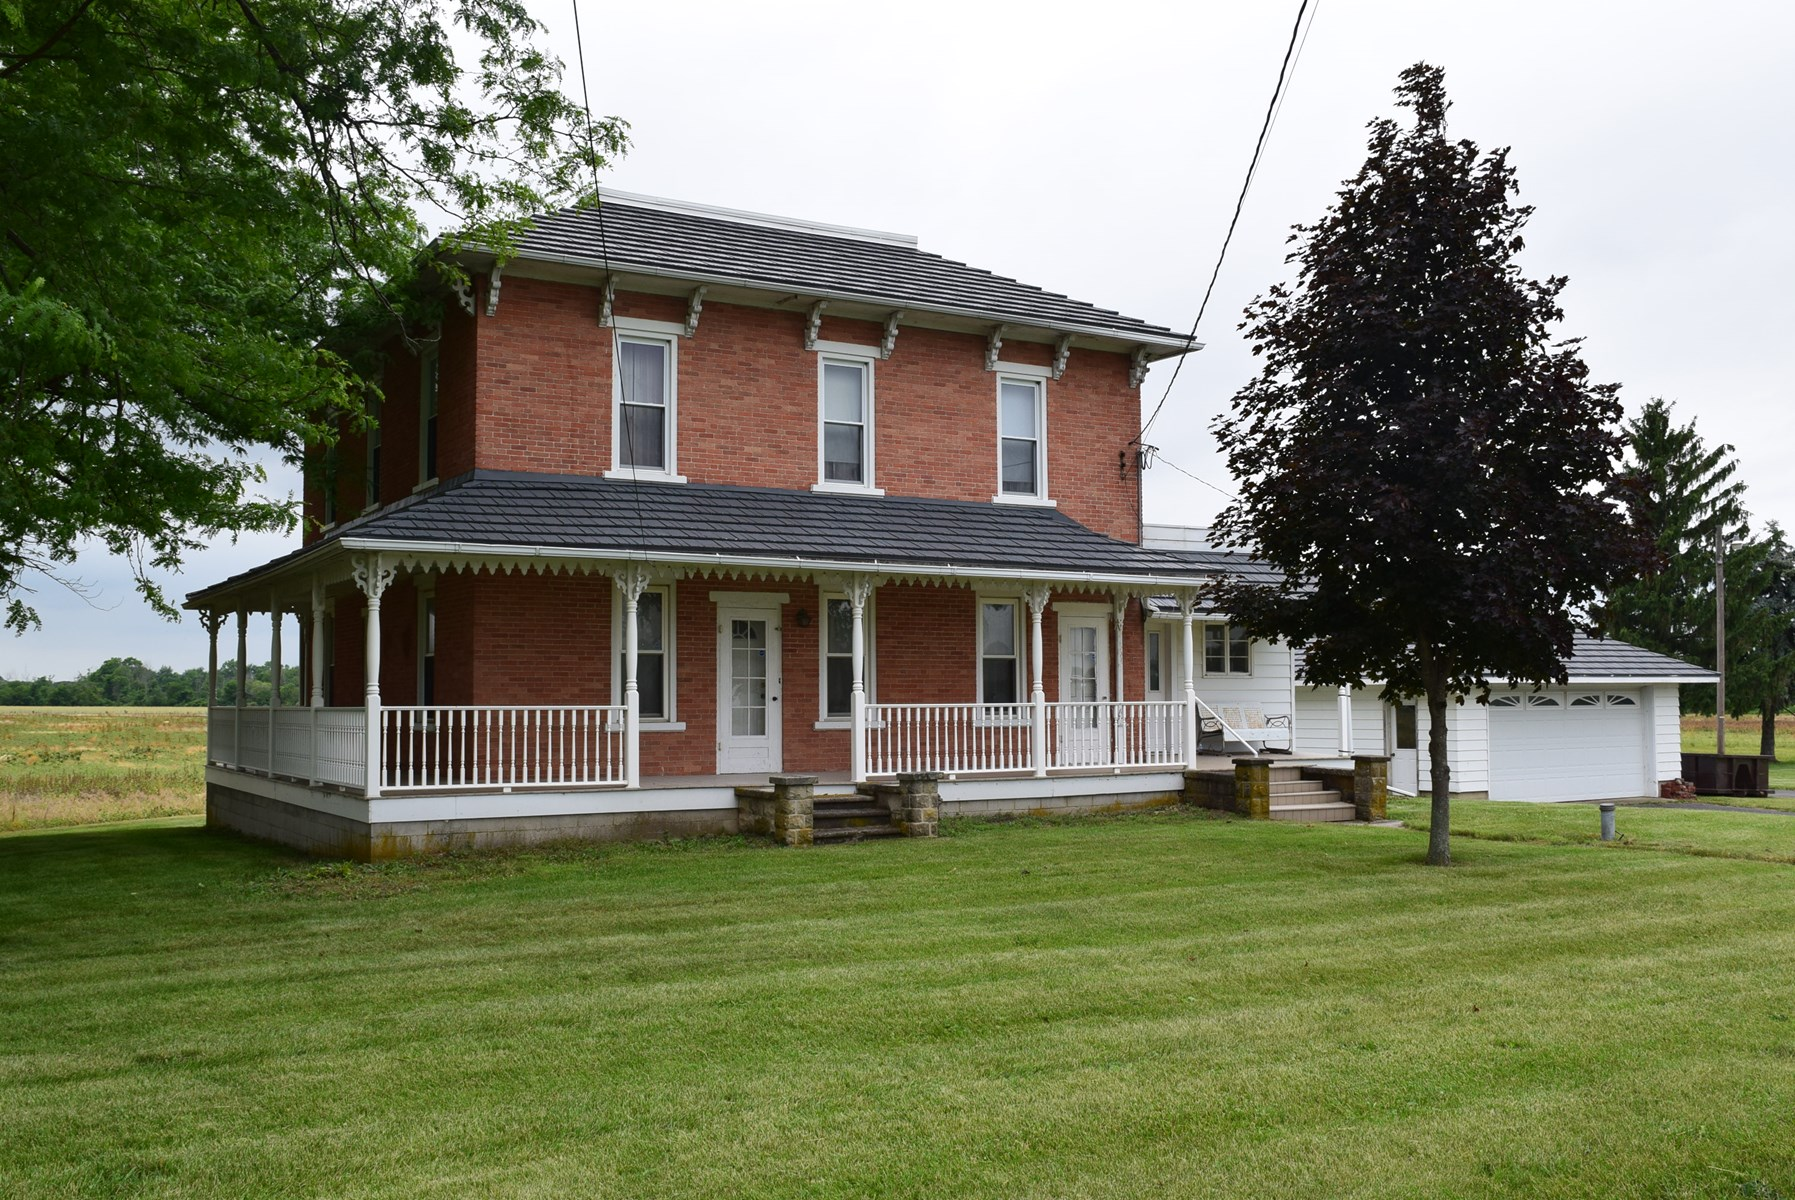 Historical Brick Home, Burgoon, OH - For Sale